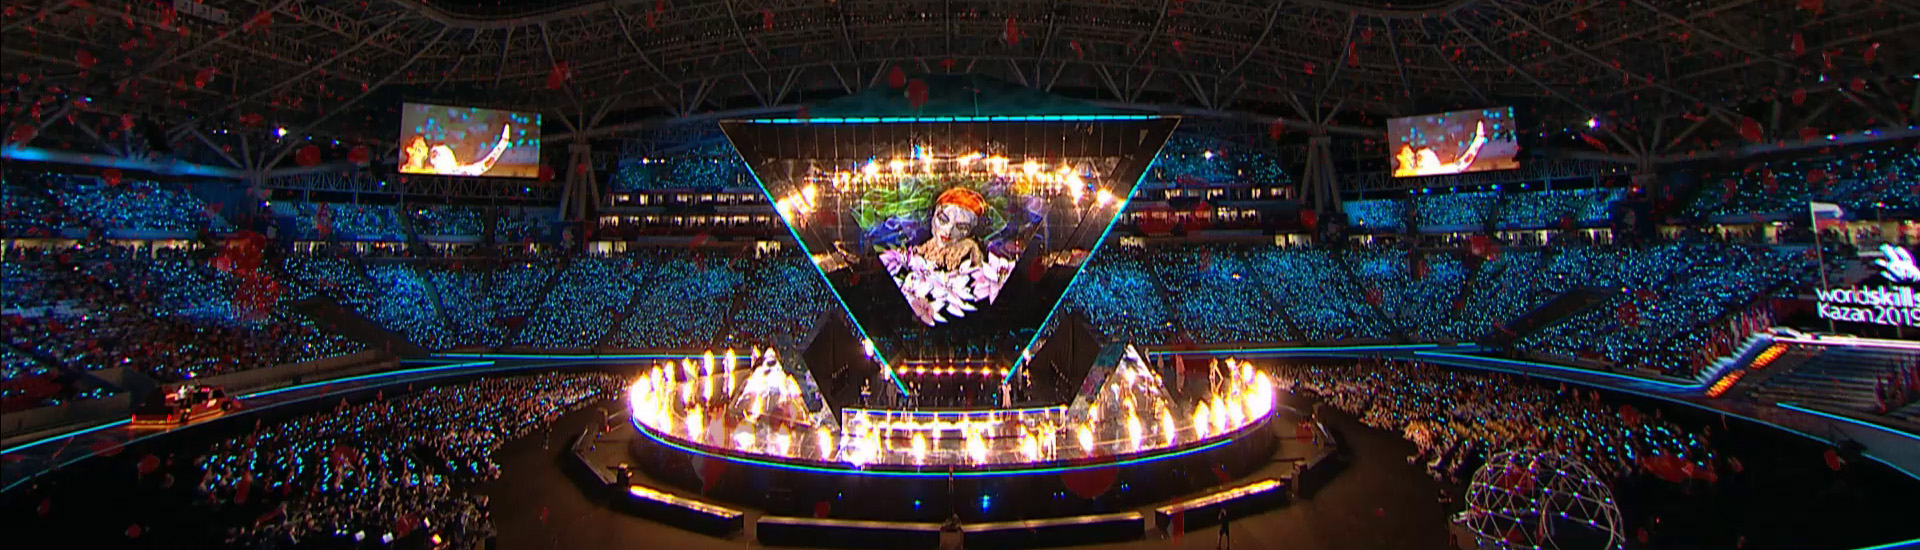 Virtual reality painting performance - WorldSkills opening ceremony Kazan